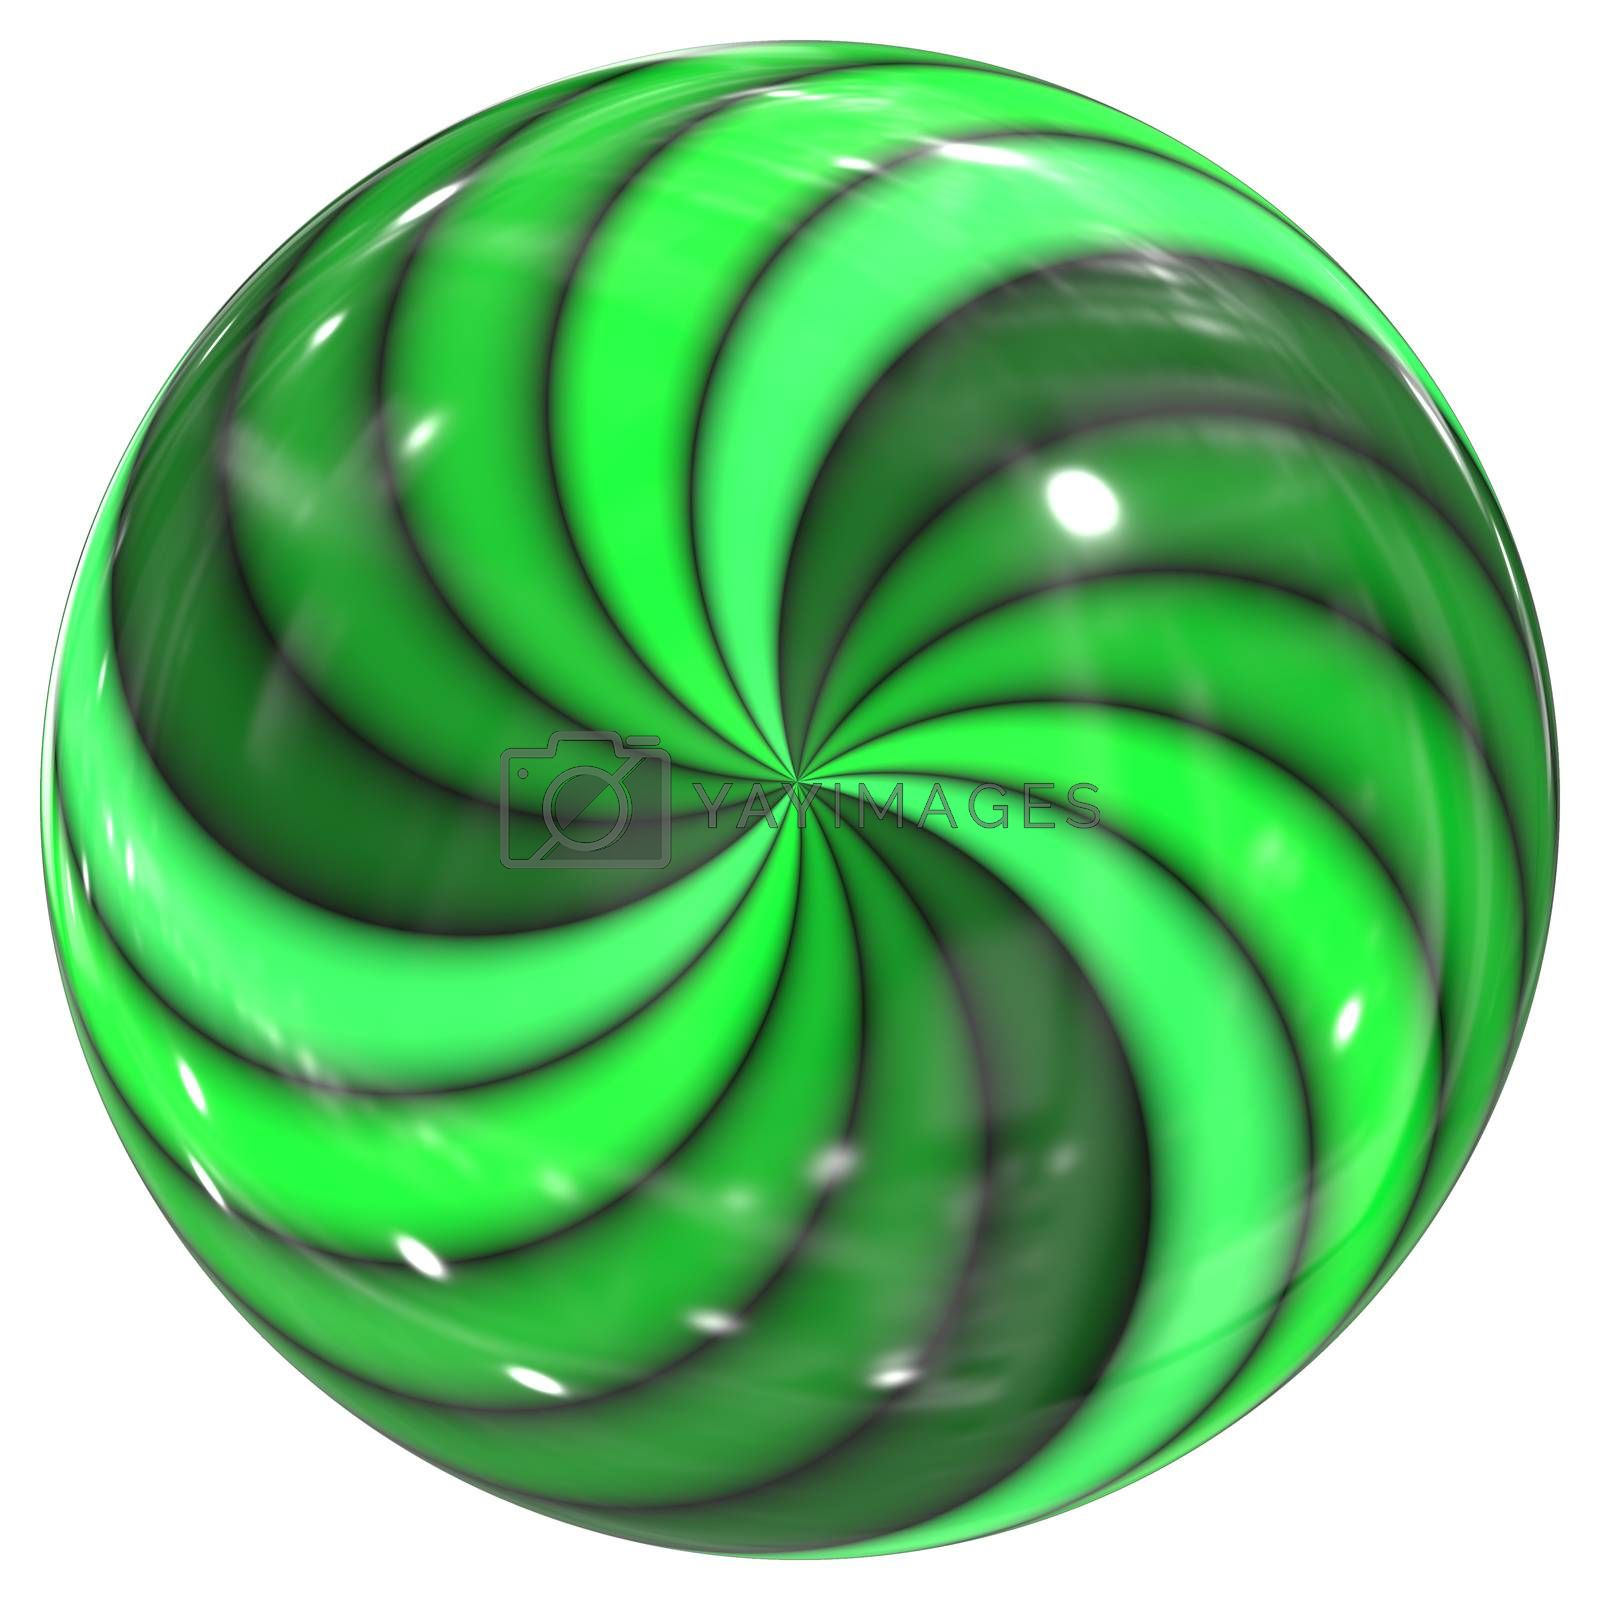 An illustration of a green swirl glass sphere